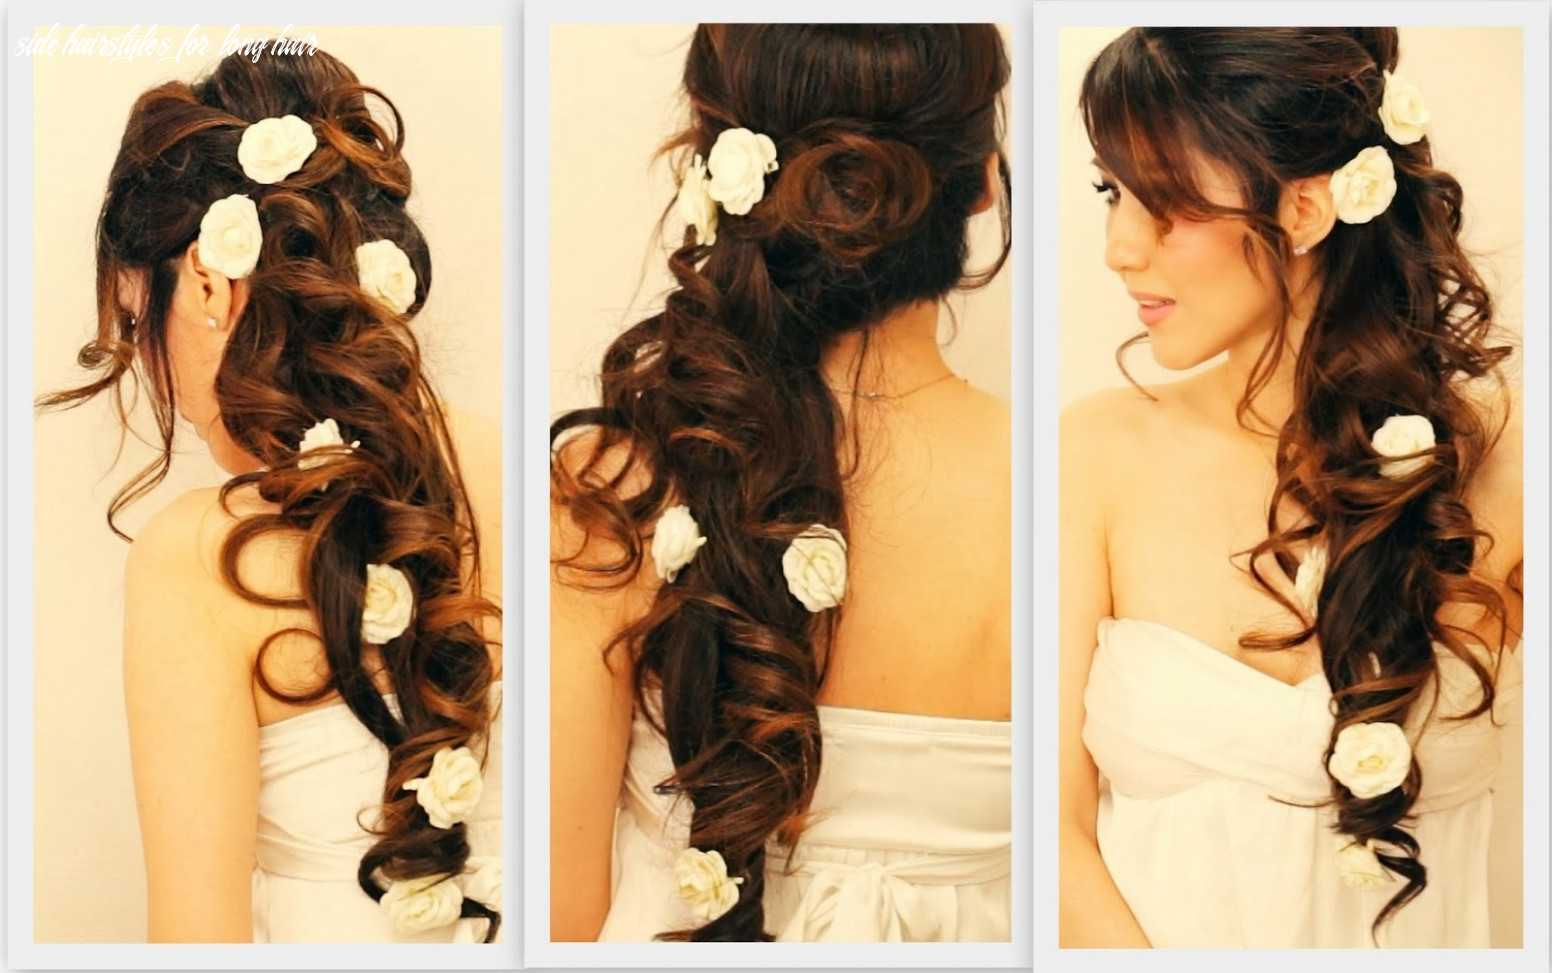 Hair Fashion Style: Best hairstyles for long hair wedding